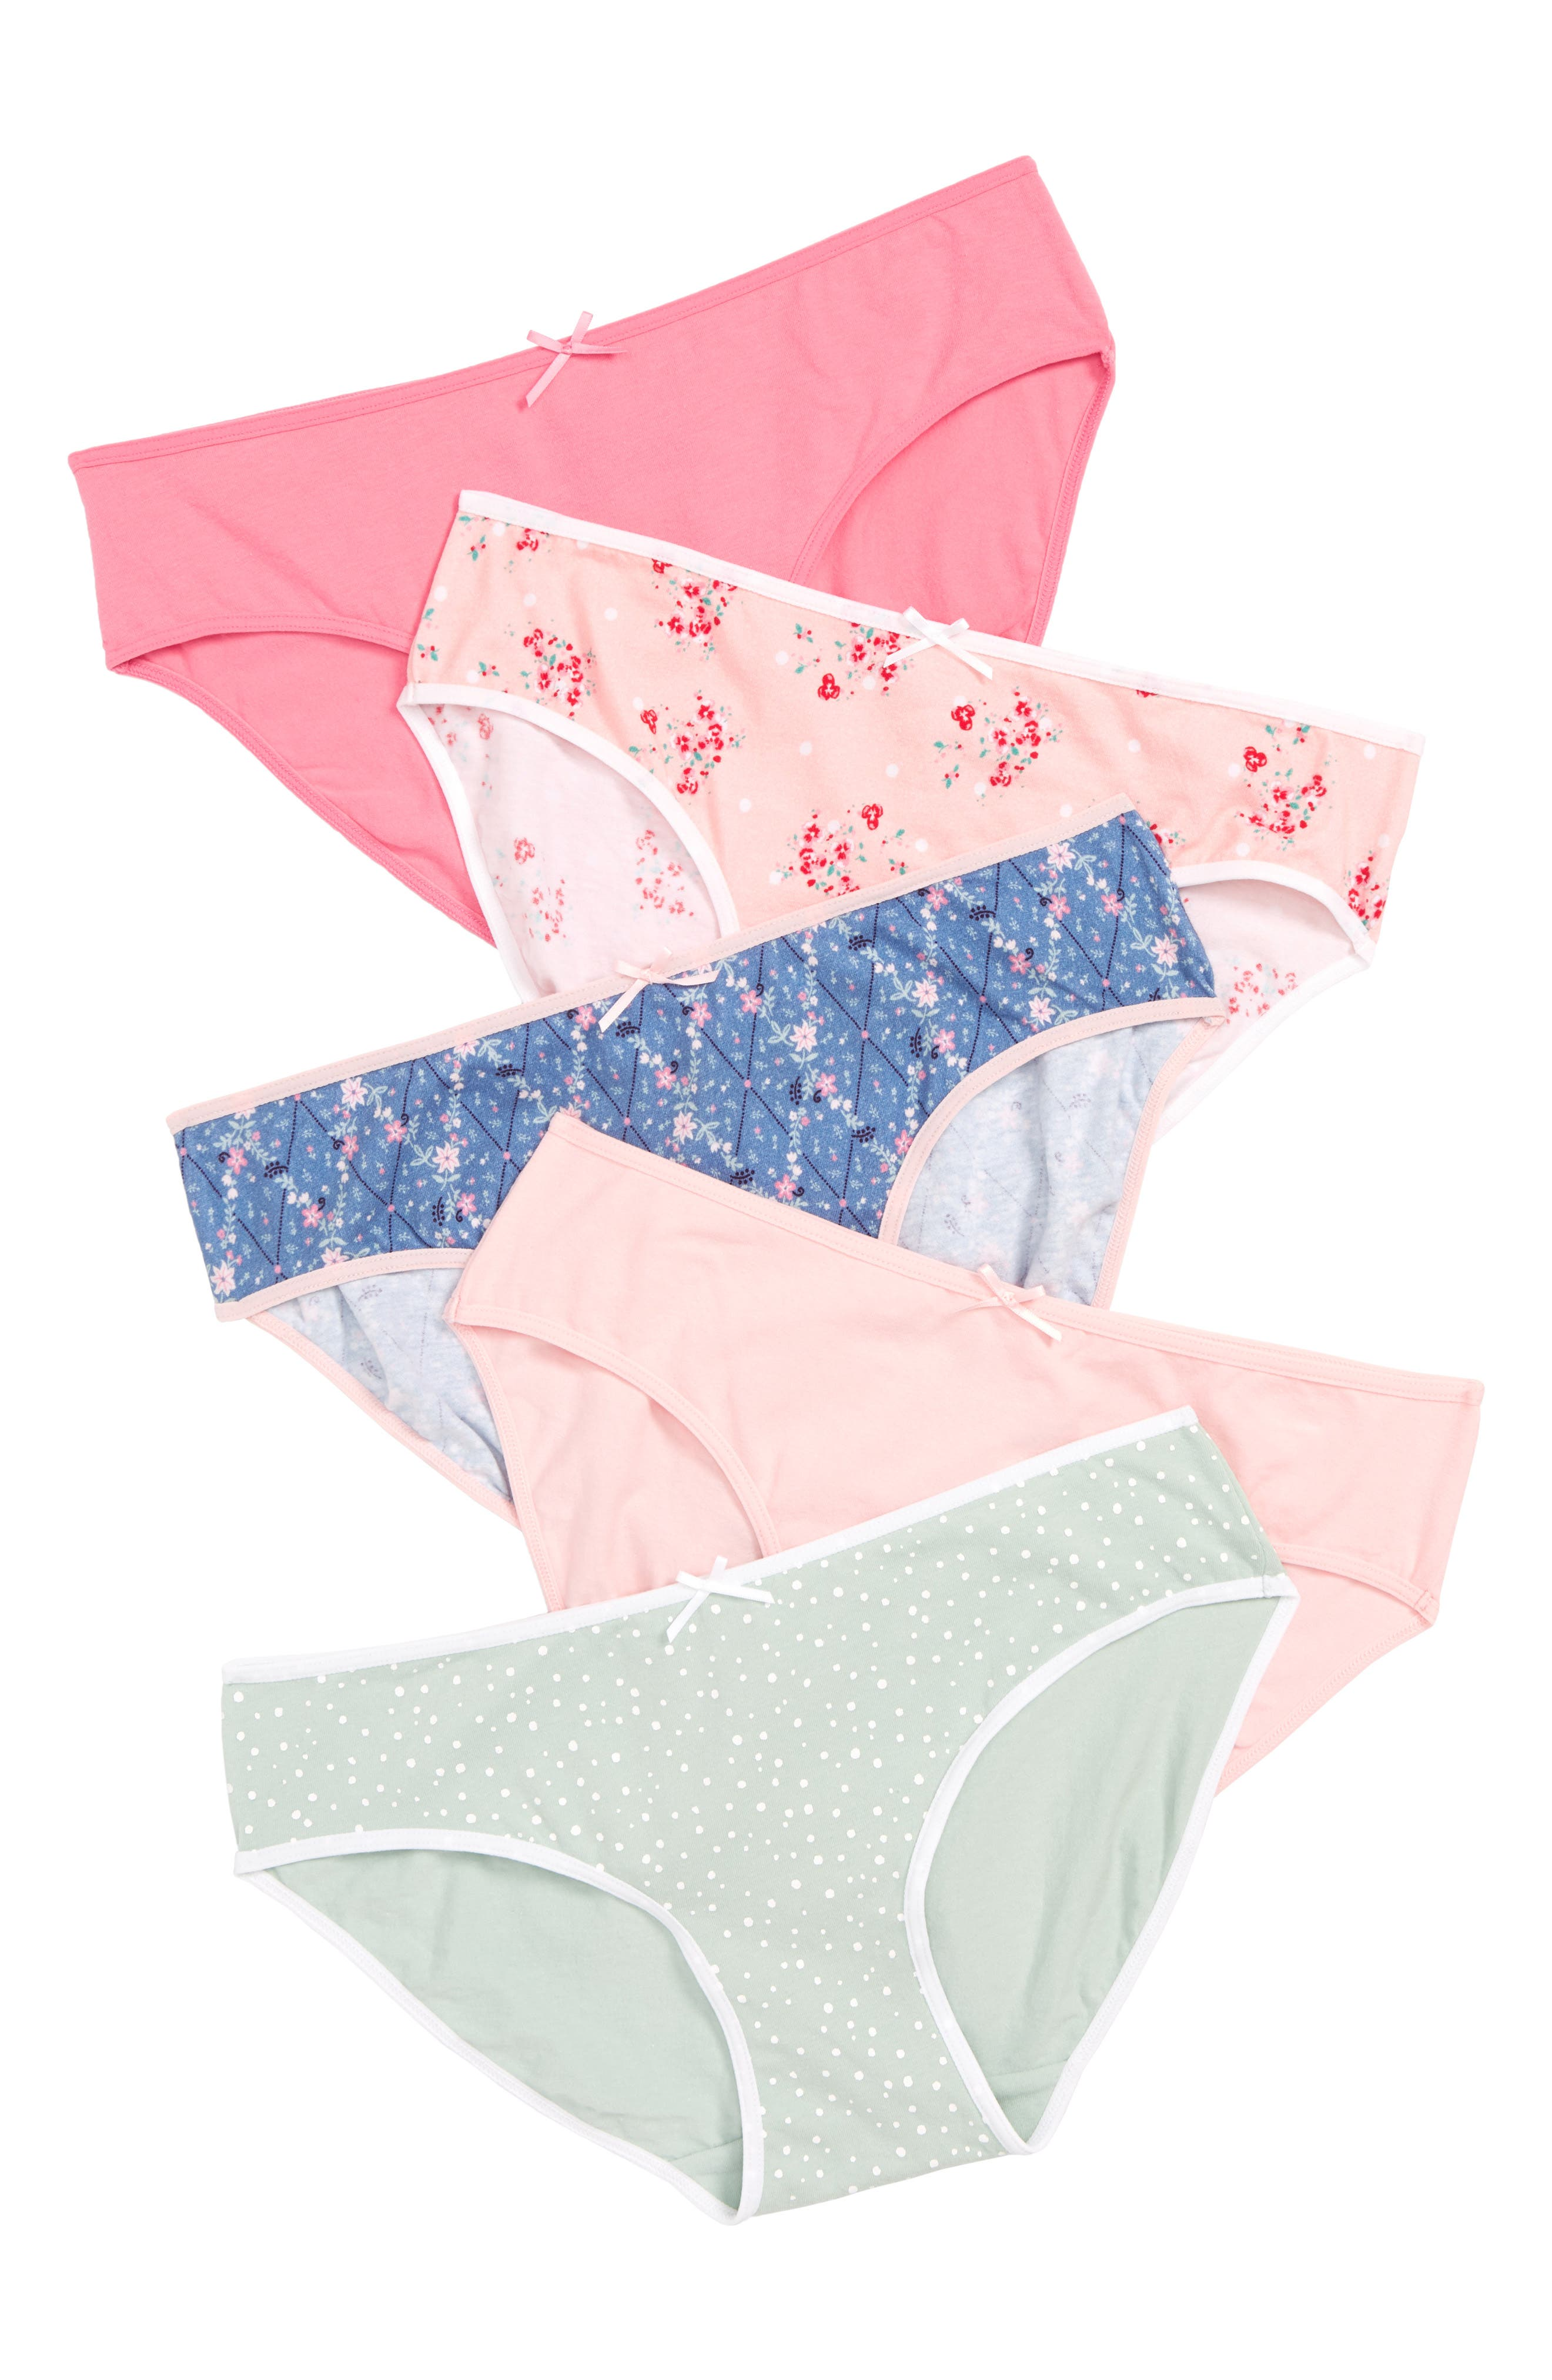 5-Pack Hipster Briefs,                             Main thumbnail 1, color,                             DELICATE FLORAL PACK